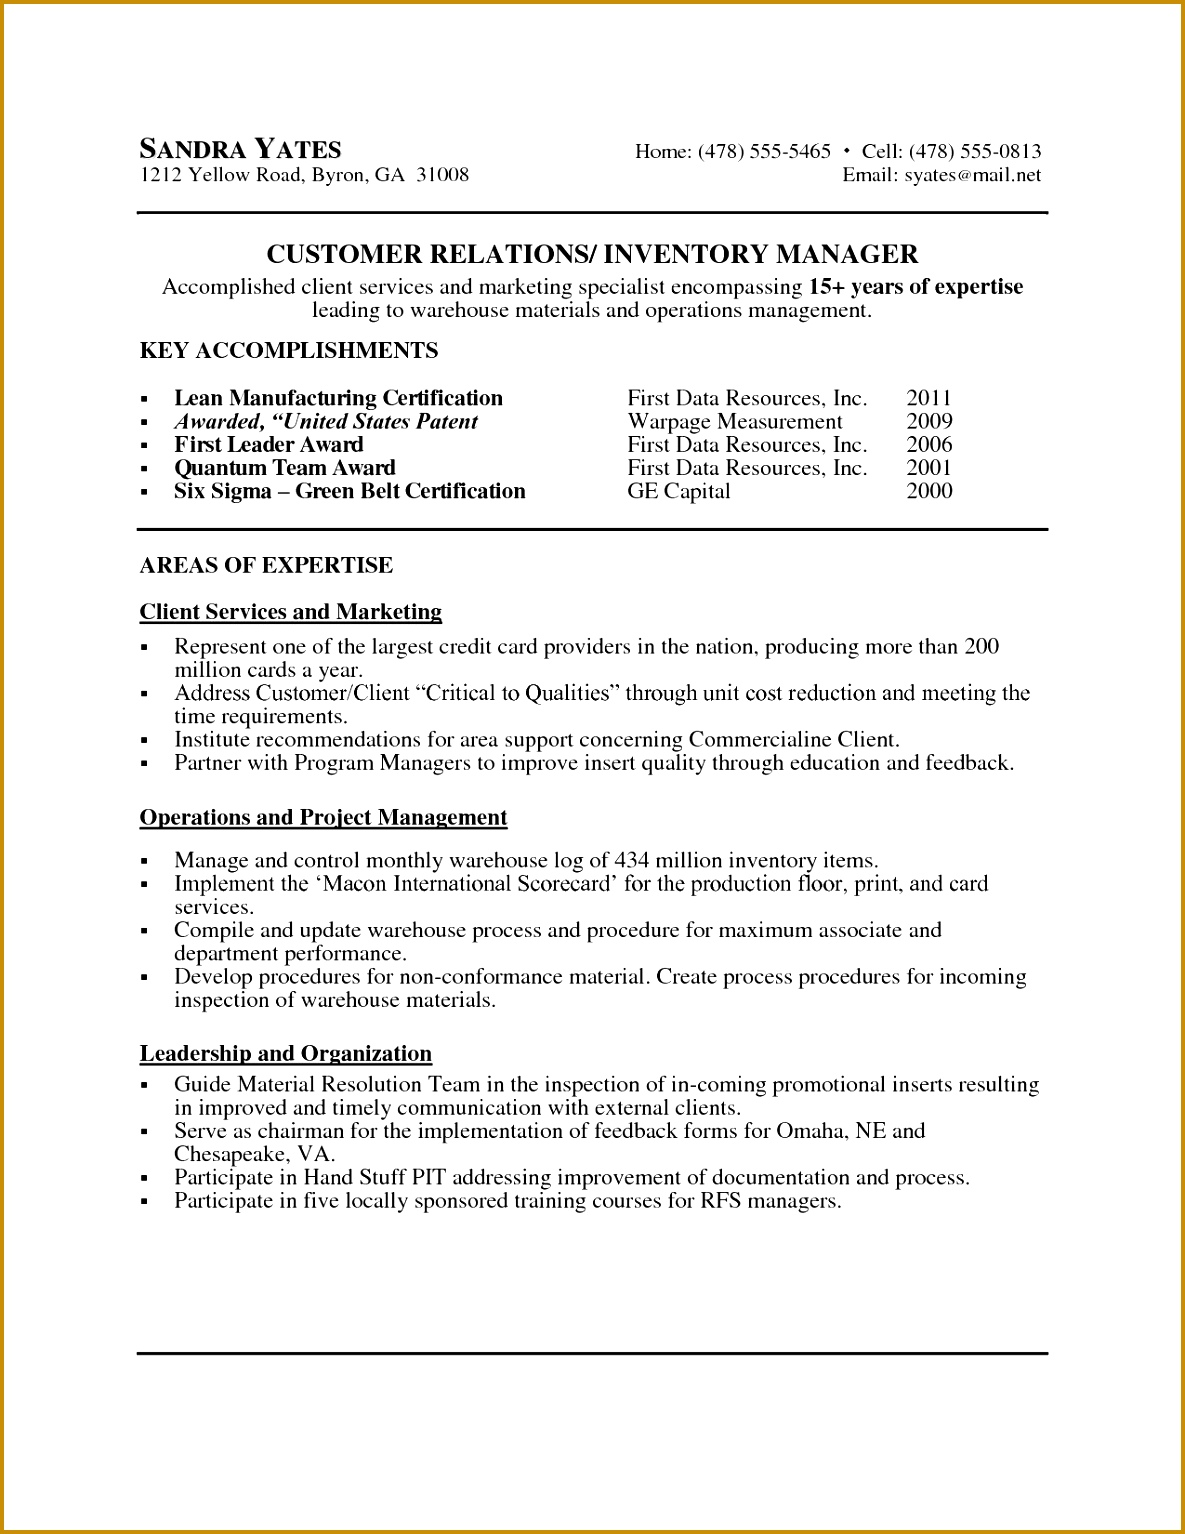 Marketing Resume Template Unique American Resume Sample New Student Resume 0d Wallpapers 42 Awesome 15341185